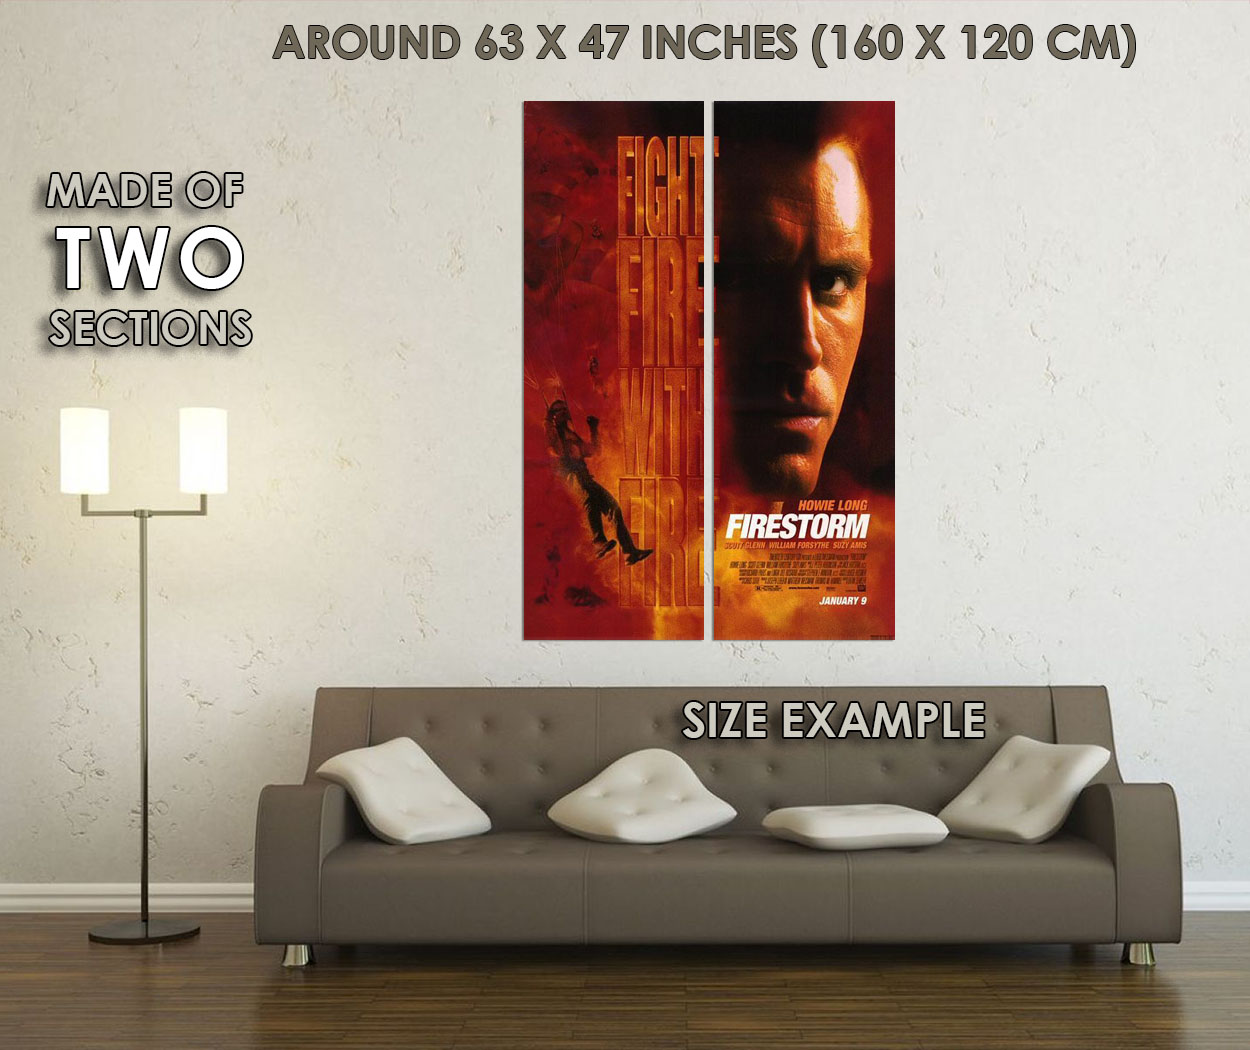 237502-FIRESTORM-1998-Movie-Howie-Long-Suzy-Amis-WALL-PRINT-POSTER-US miniature 6